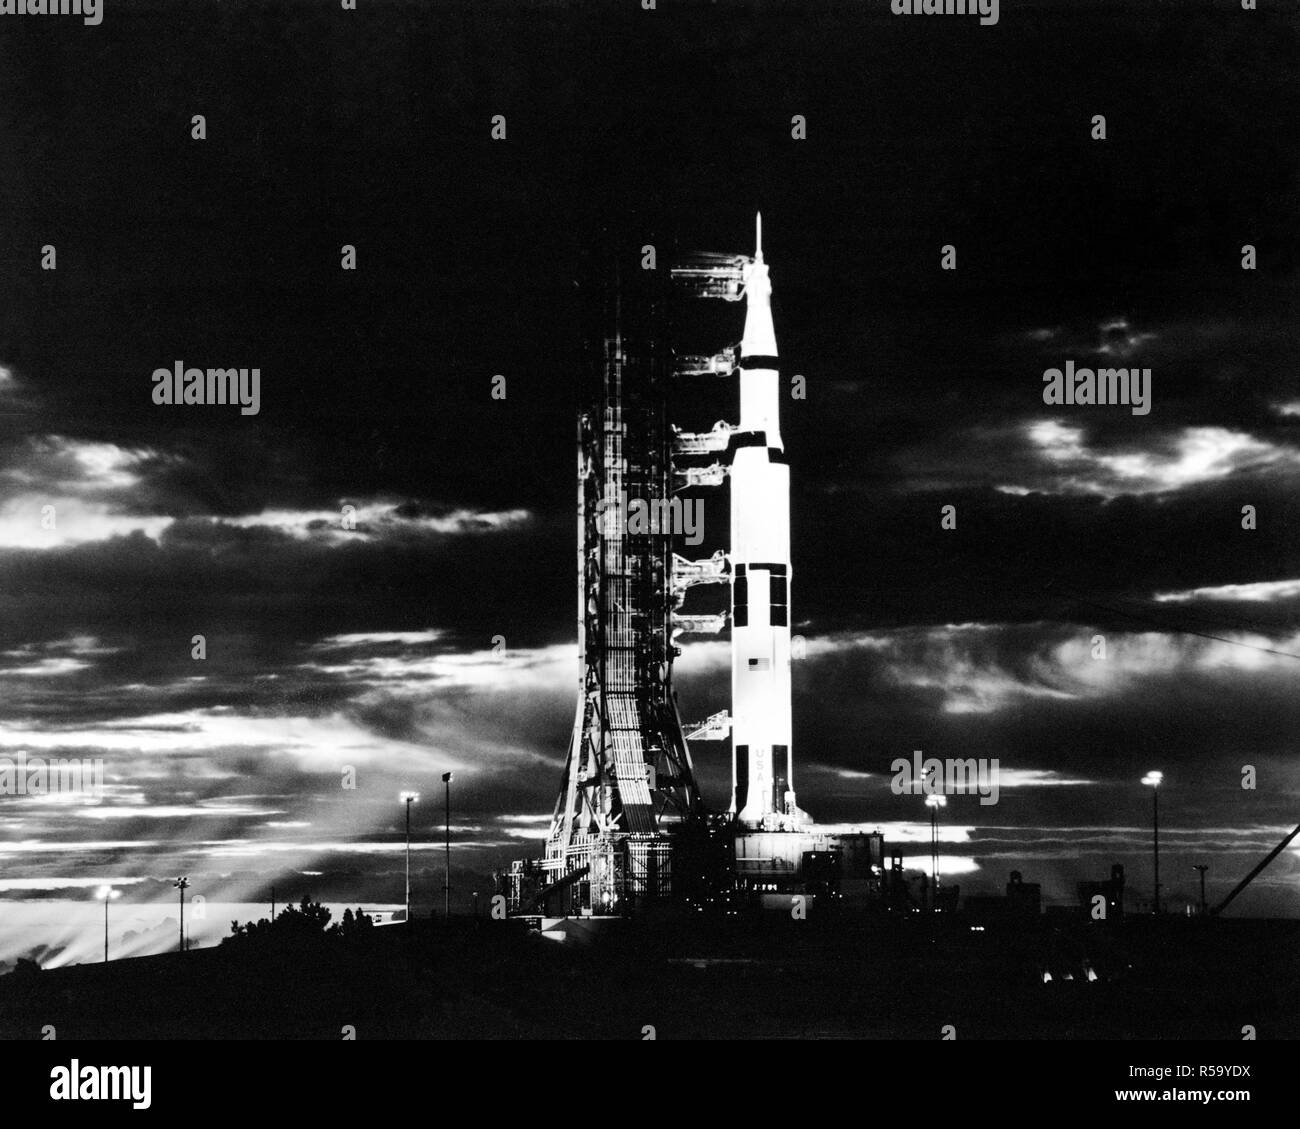 (November 1972) --- Searchlights illuminate this nighttime scene at Pad A, Launch Complex 39, Kennedy Space Center, Florida, showing the Apollo 17  space vehicle during prelaunch preparations. - Stock Image